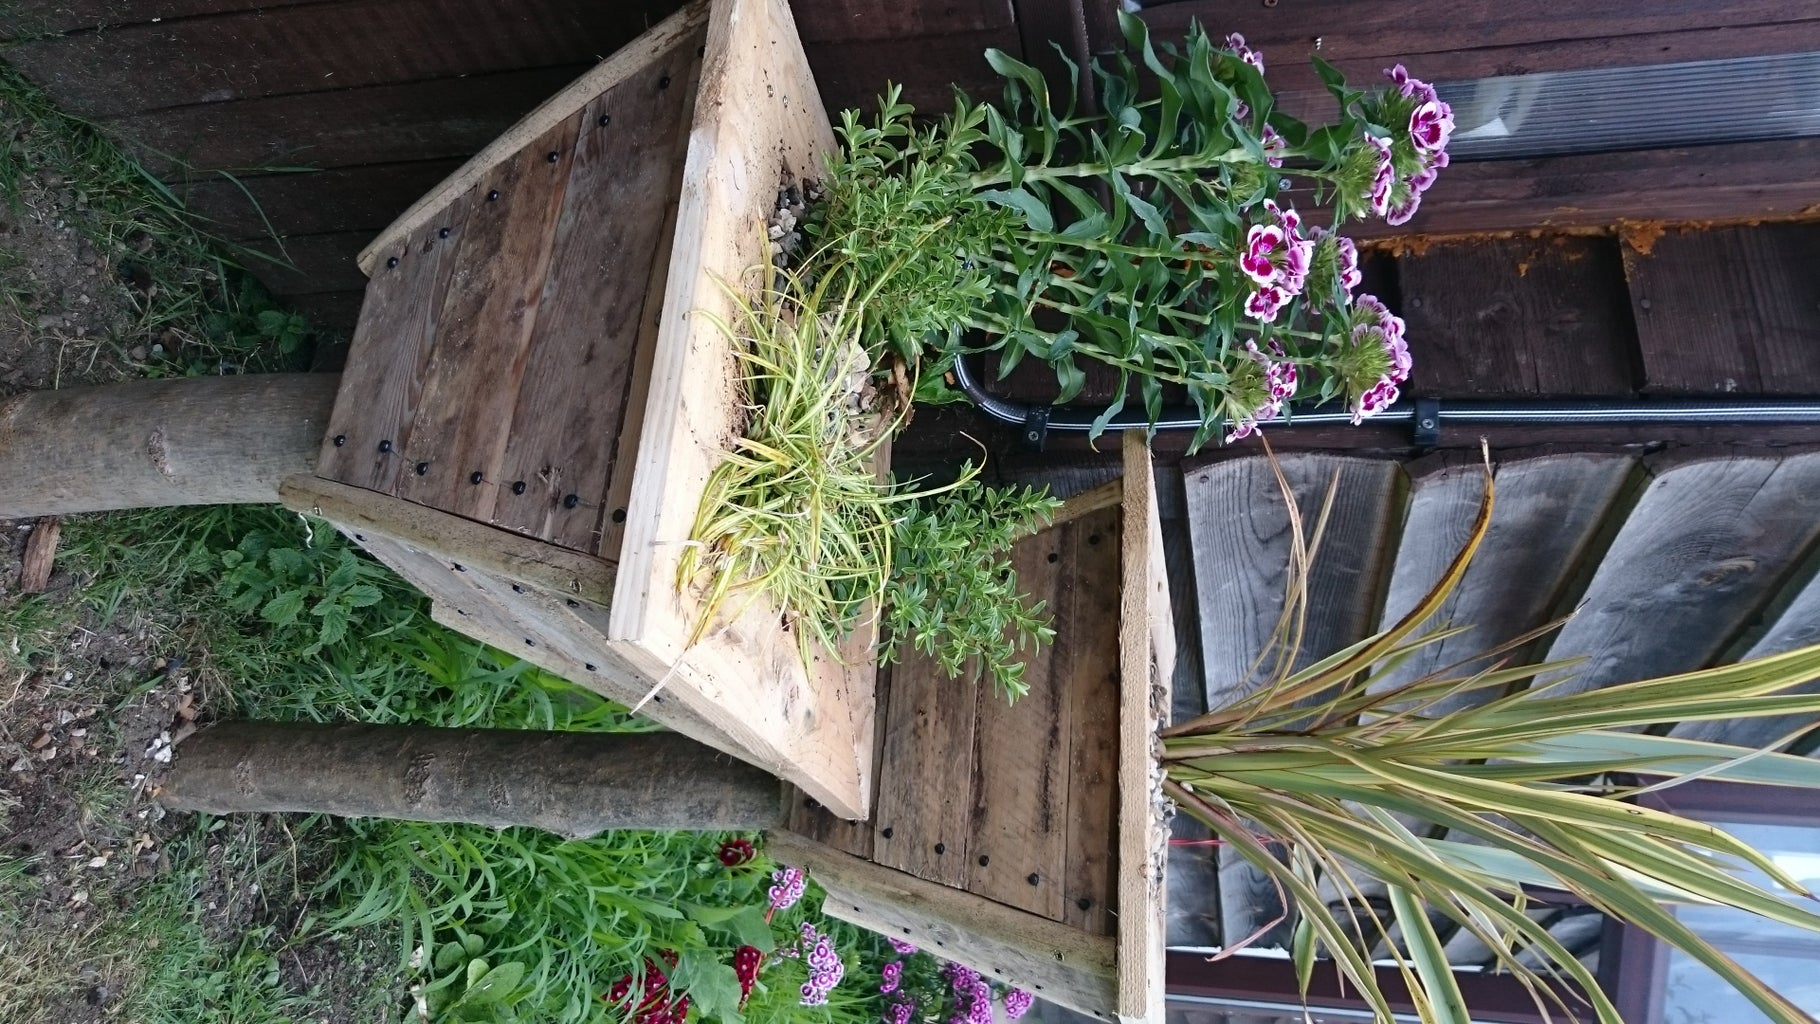 Filling Up the Planters